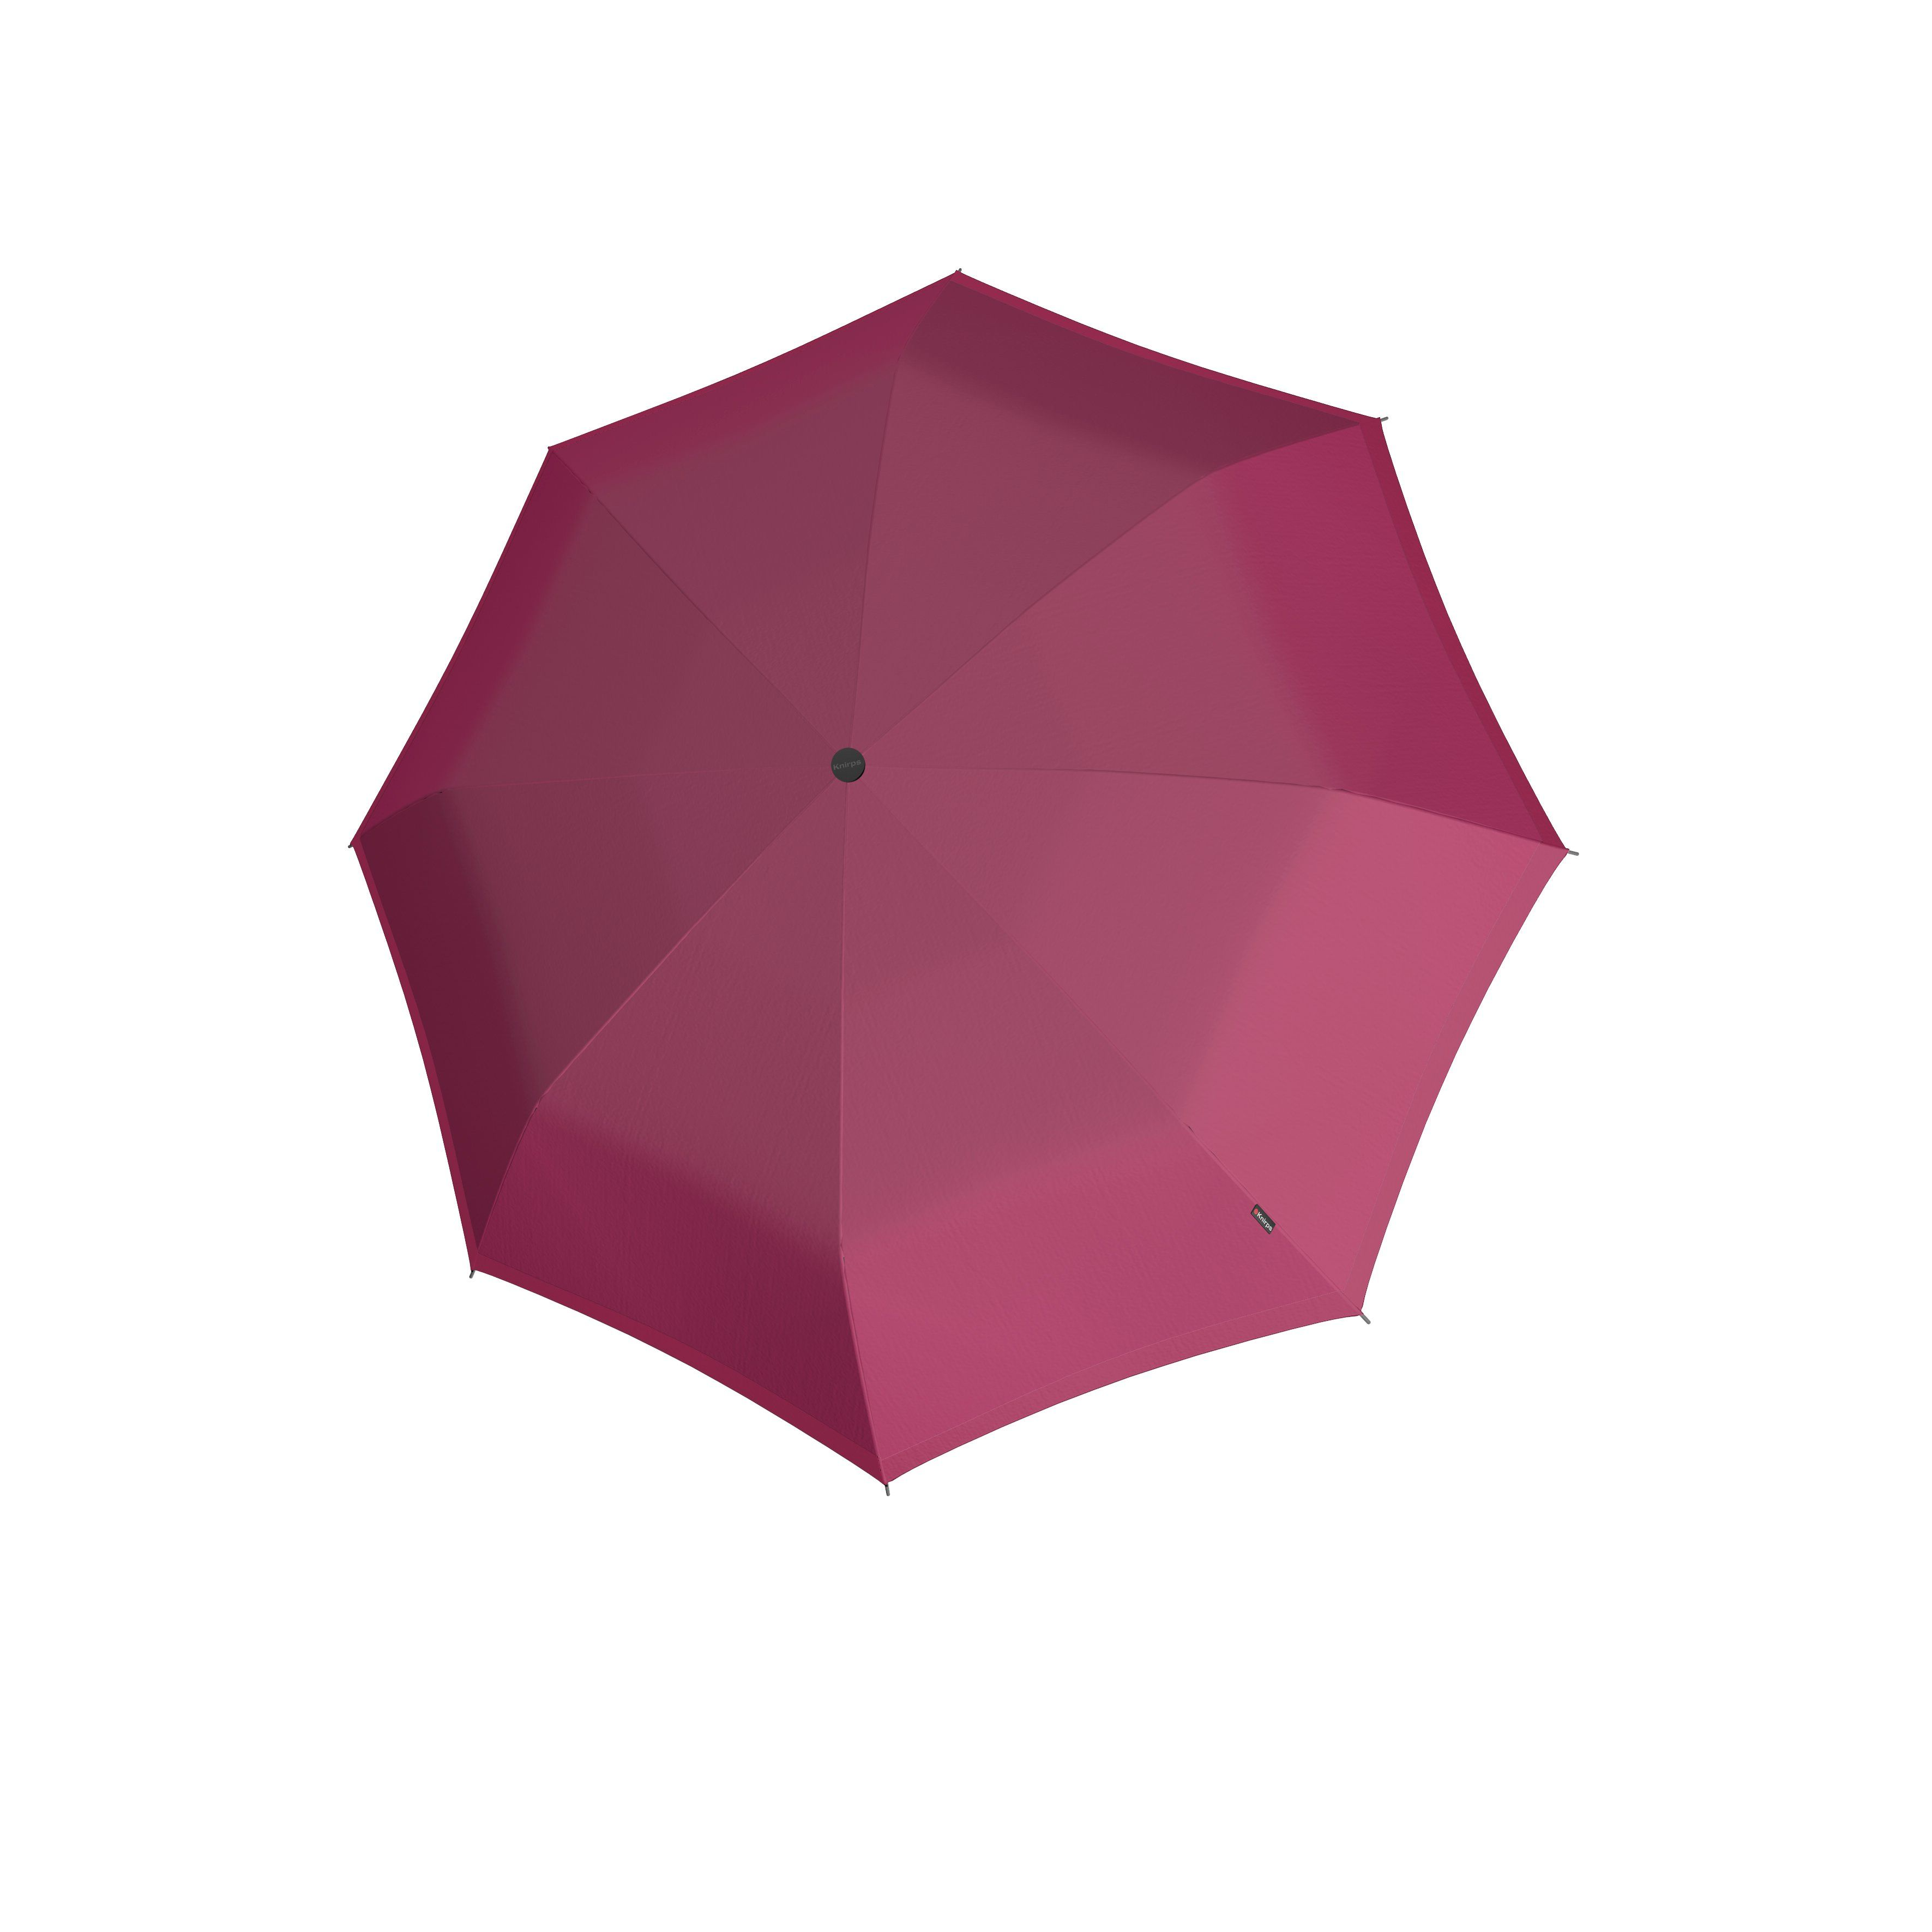 Knirps Umbrella Knirps X1 pink UV Protection 52/8